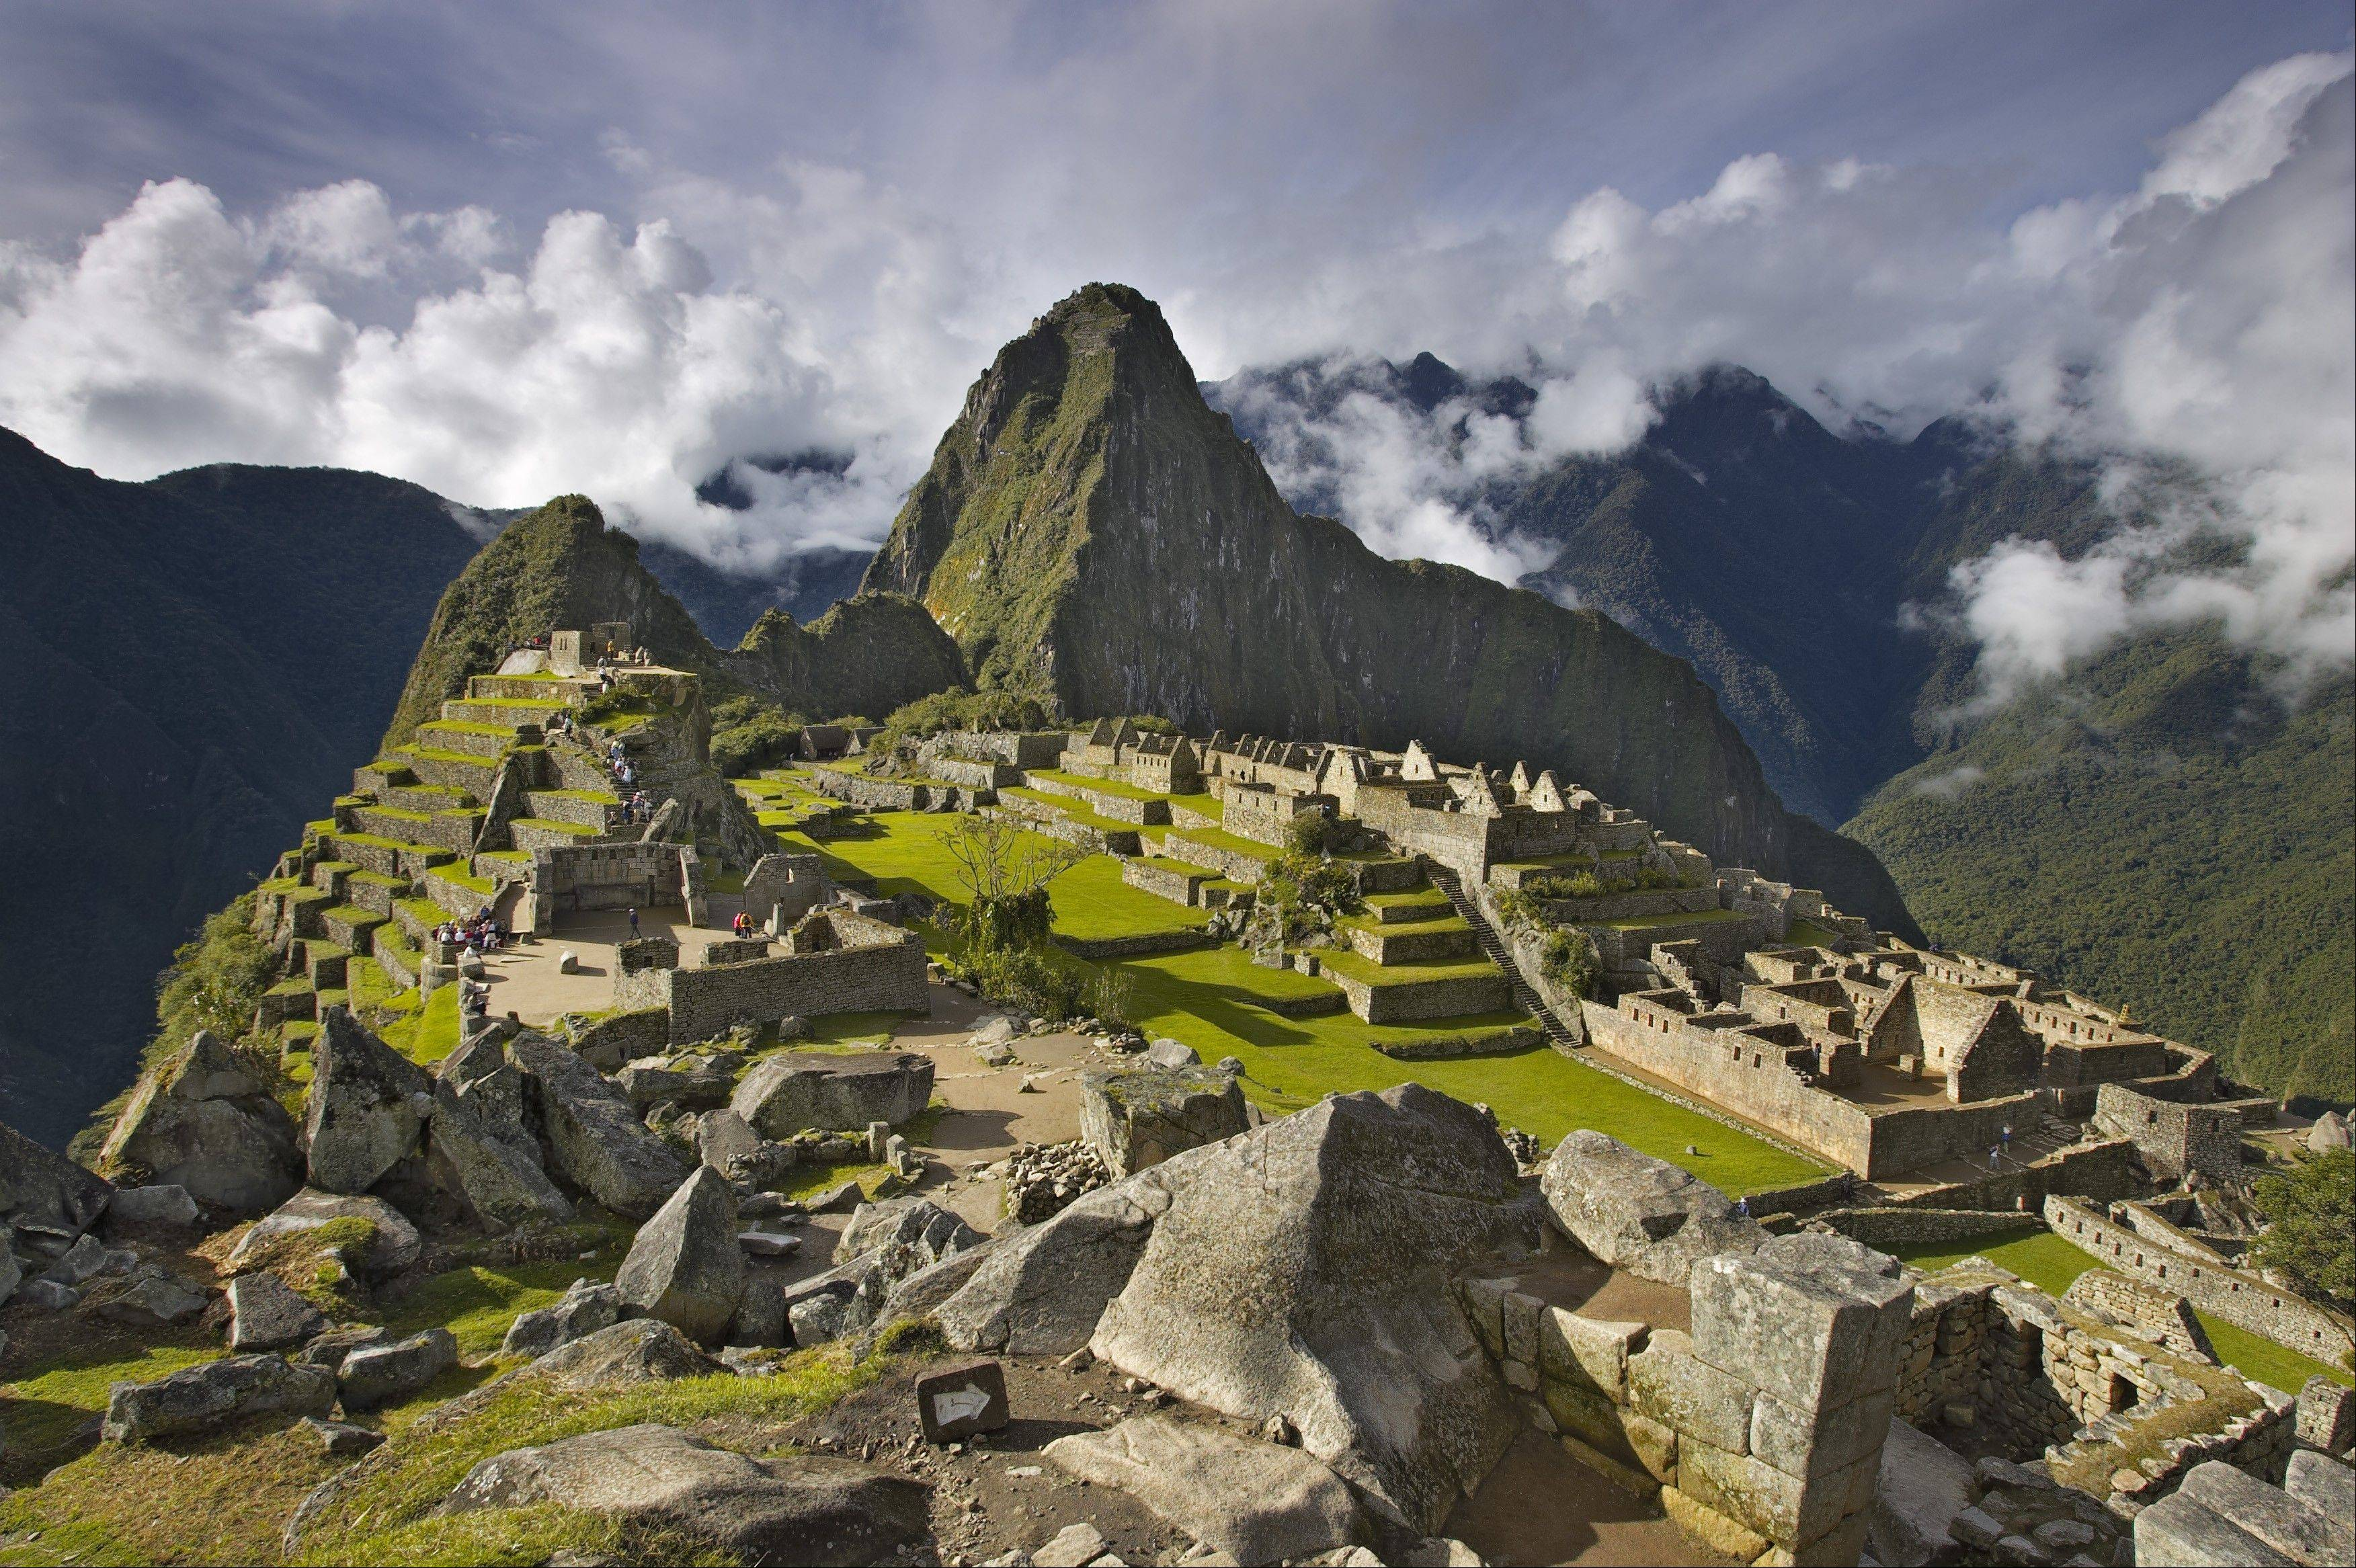 This photograph of Machu Picchu in Peru is part of the artwork by Hunt Harris on sale at North Central College to help fund the Riverwalk Gateway project.